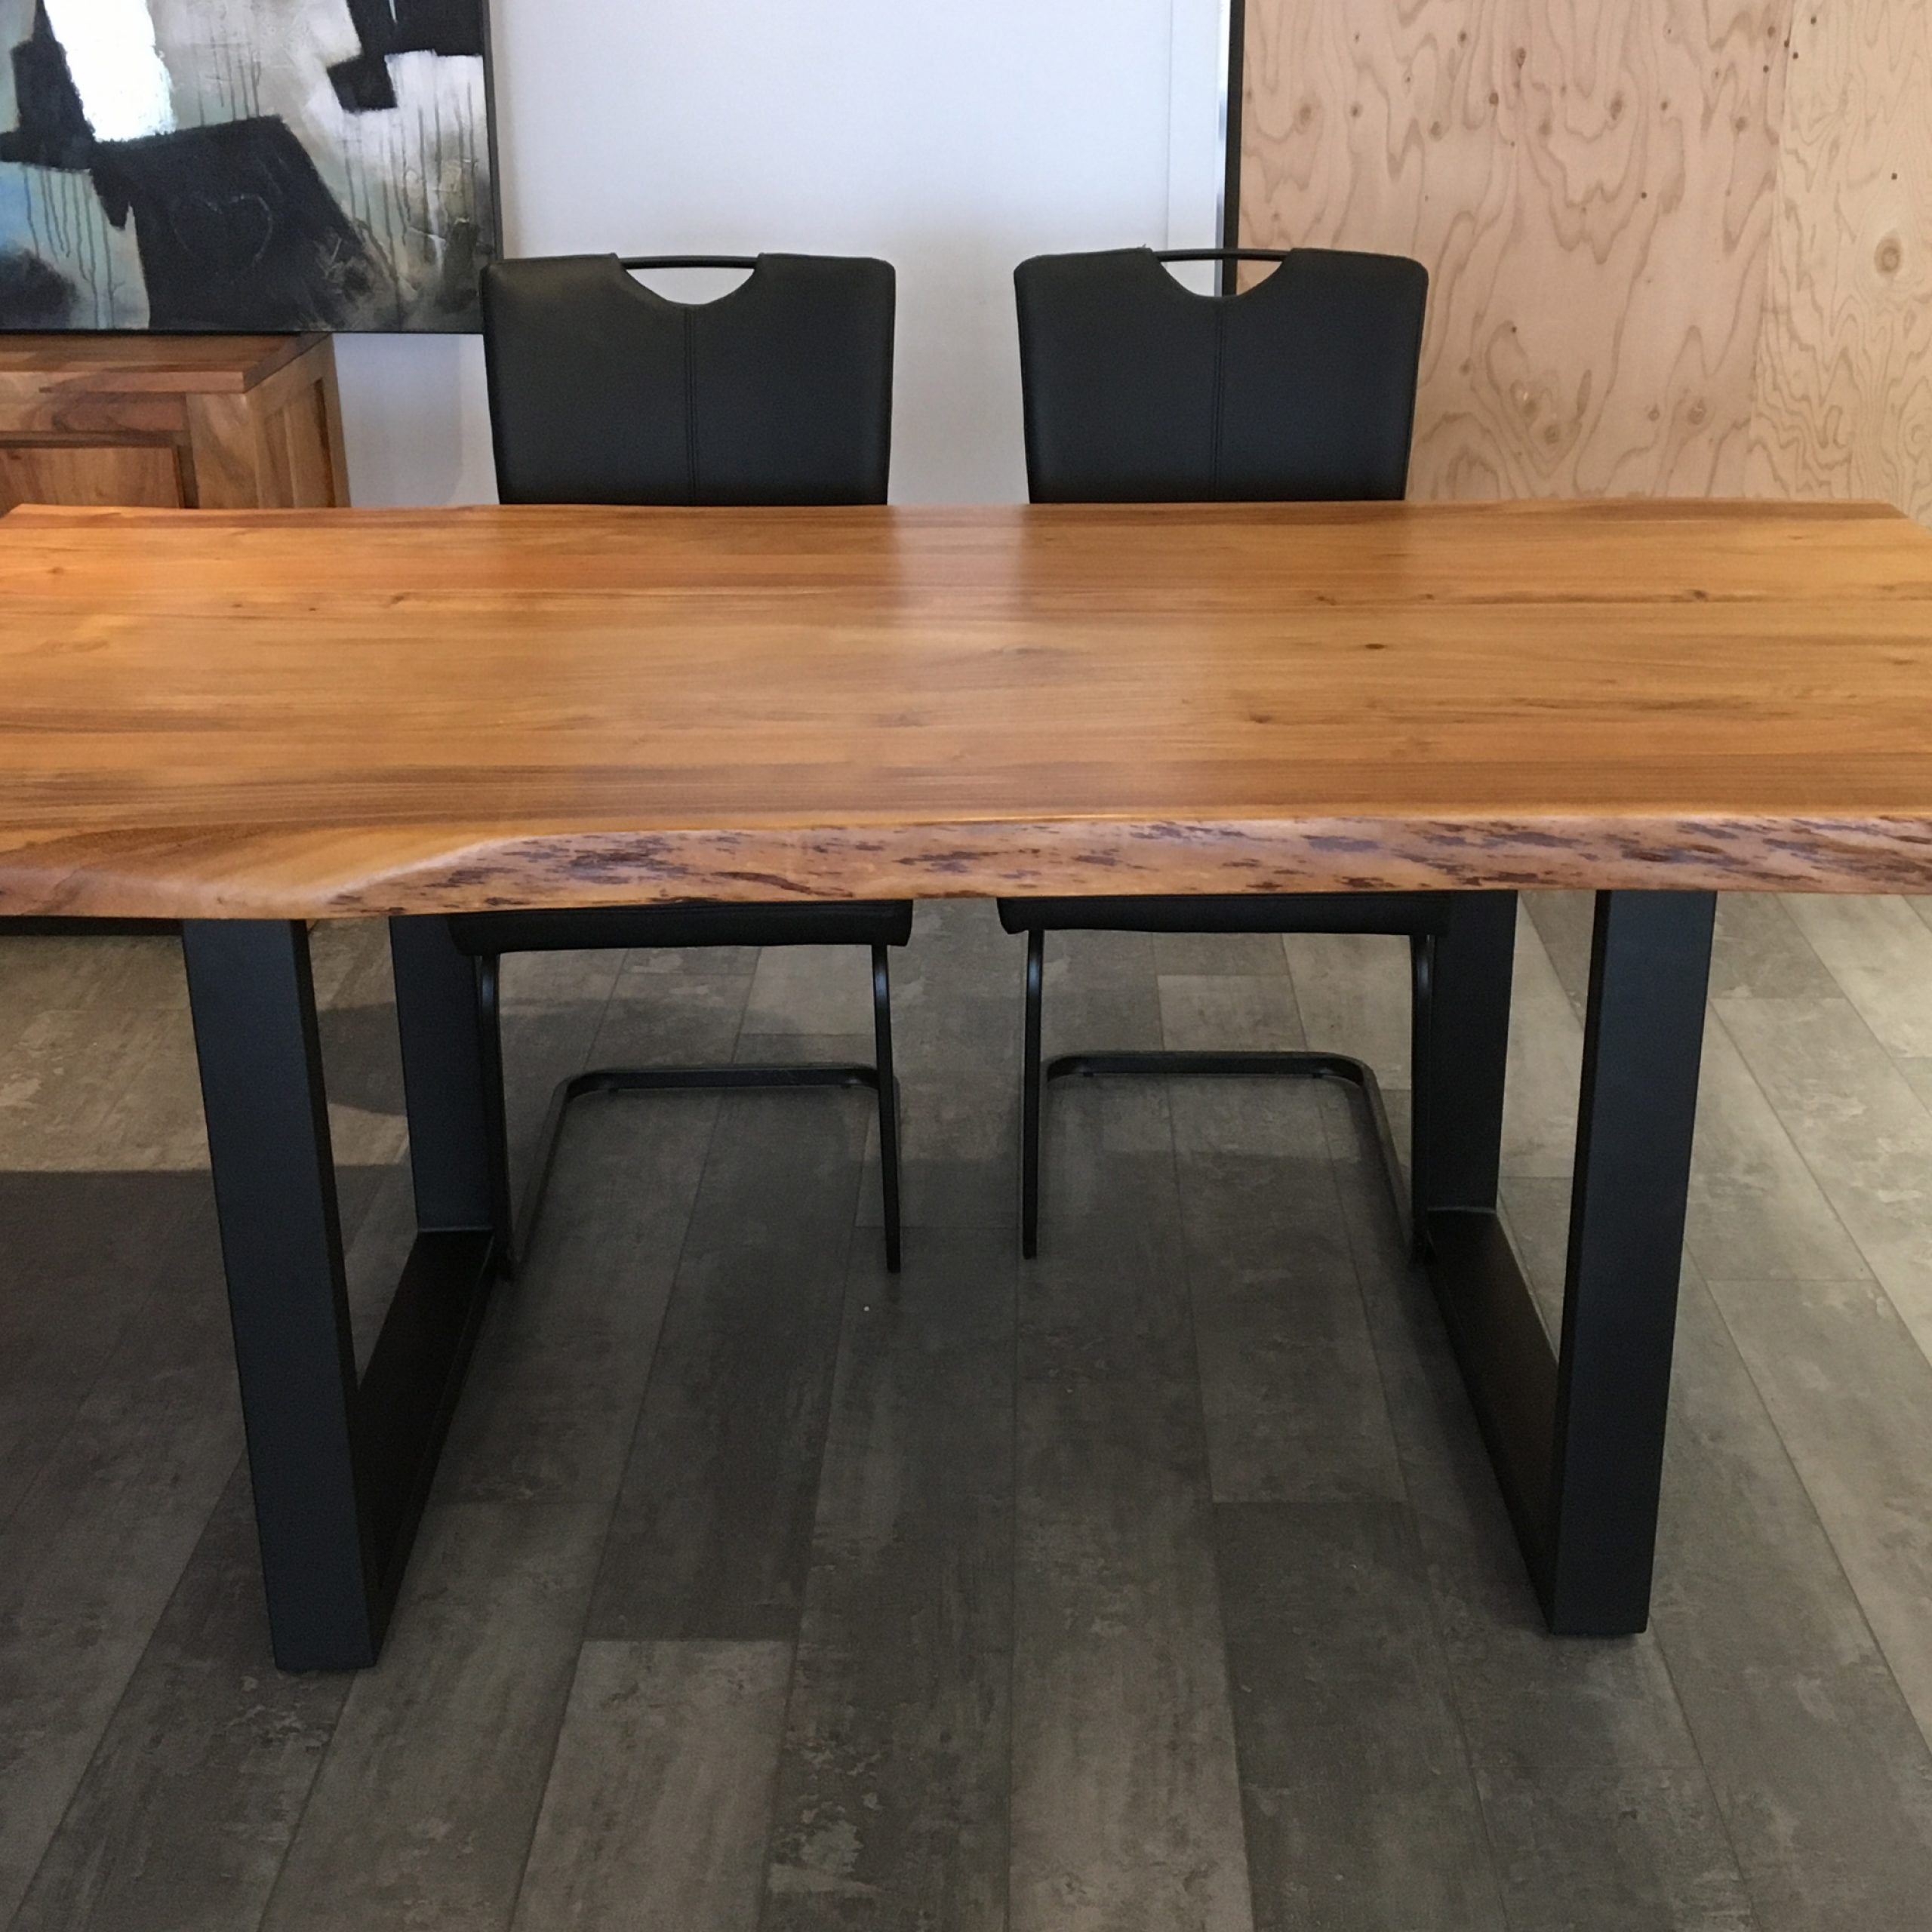 "Corcoran Acacia Live Edge Dining Table With Black U Legs – 72"" With Regard To Fashionable Acacia Dining Tables With Black Legs (View 19 of 30)"